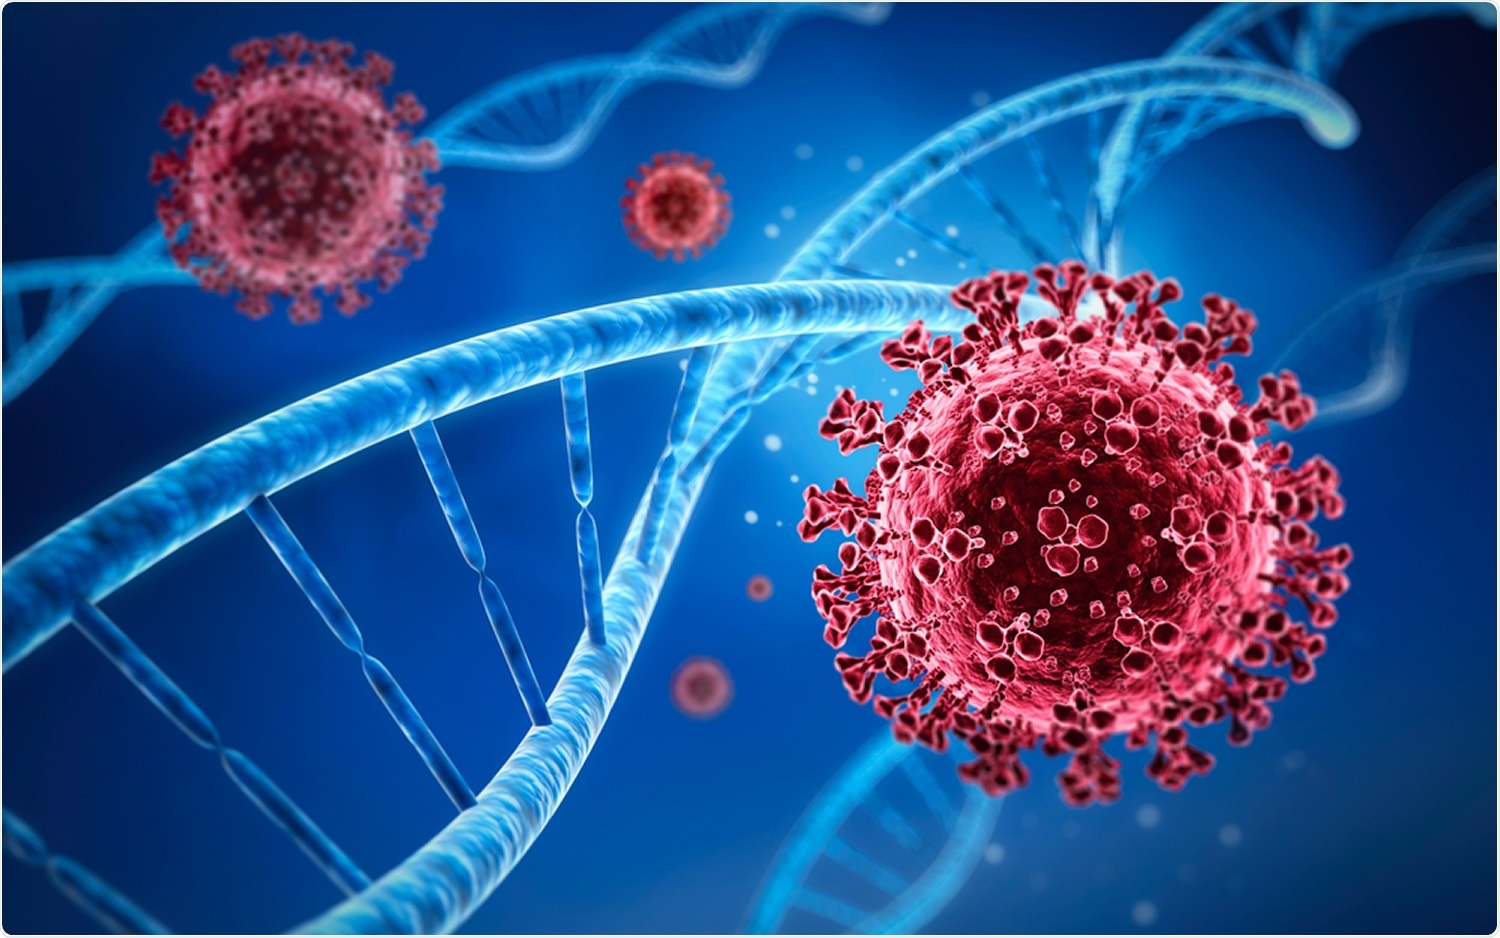 Study: Evolutionary Tracking of SARS-CoV-2 Genetic Variants Highlights an Intricate Balance of Stabilizing and Destabilizing Mutations. Image Credit: peterschreiber.media / Shutterstock